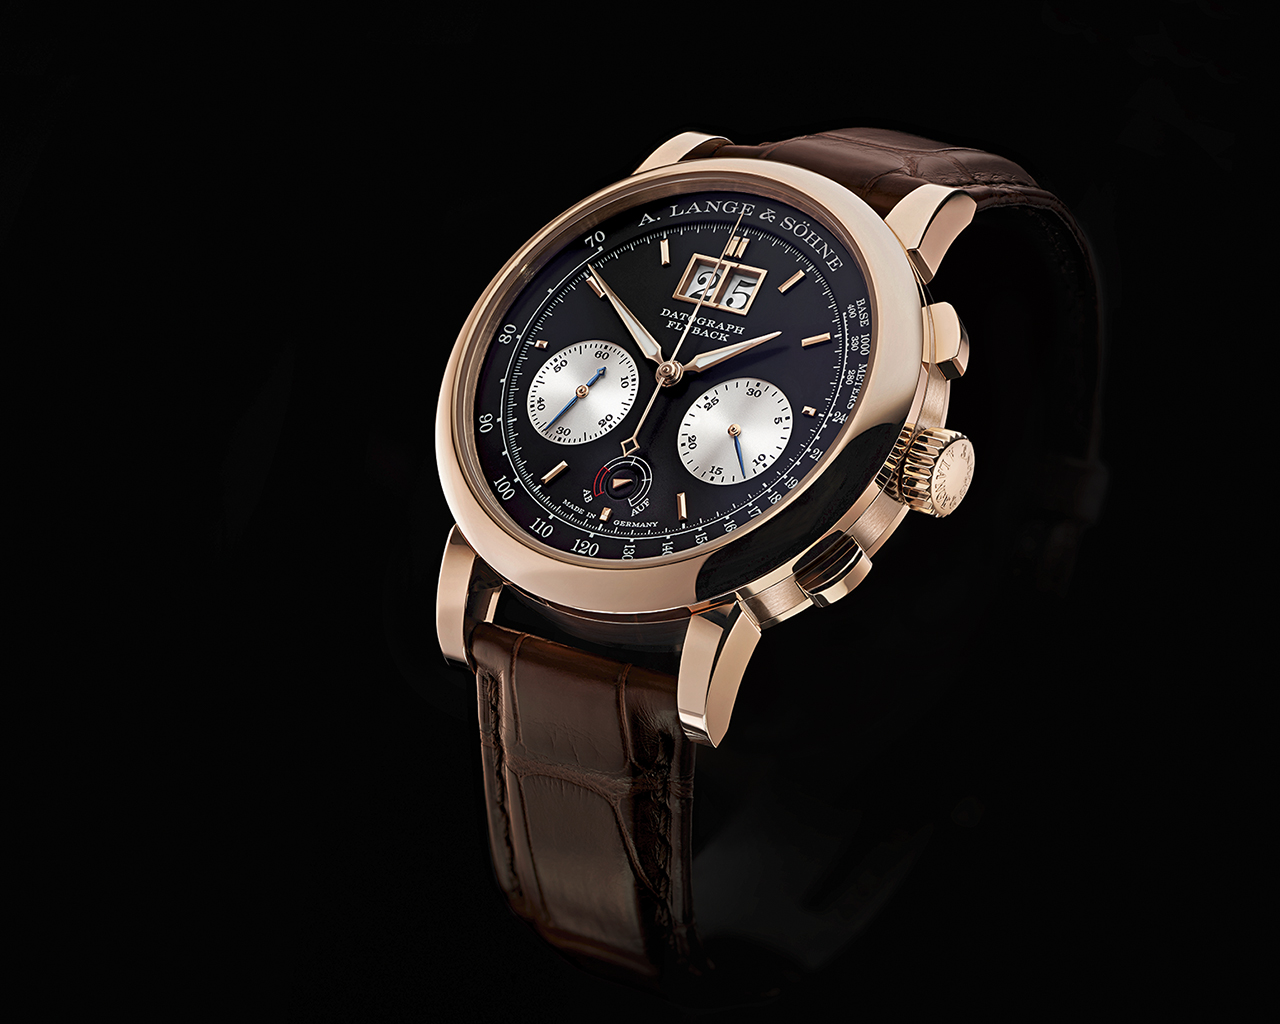 A. Lange & Sohne Datograph Up Down perfil